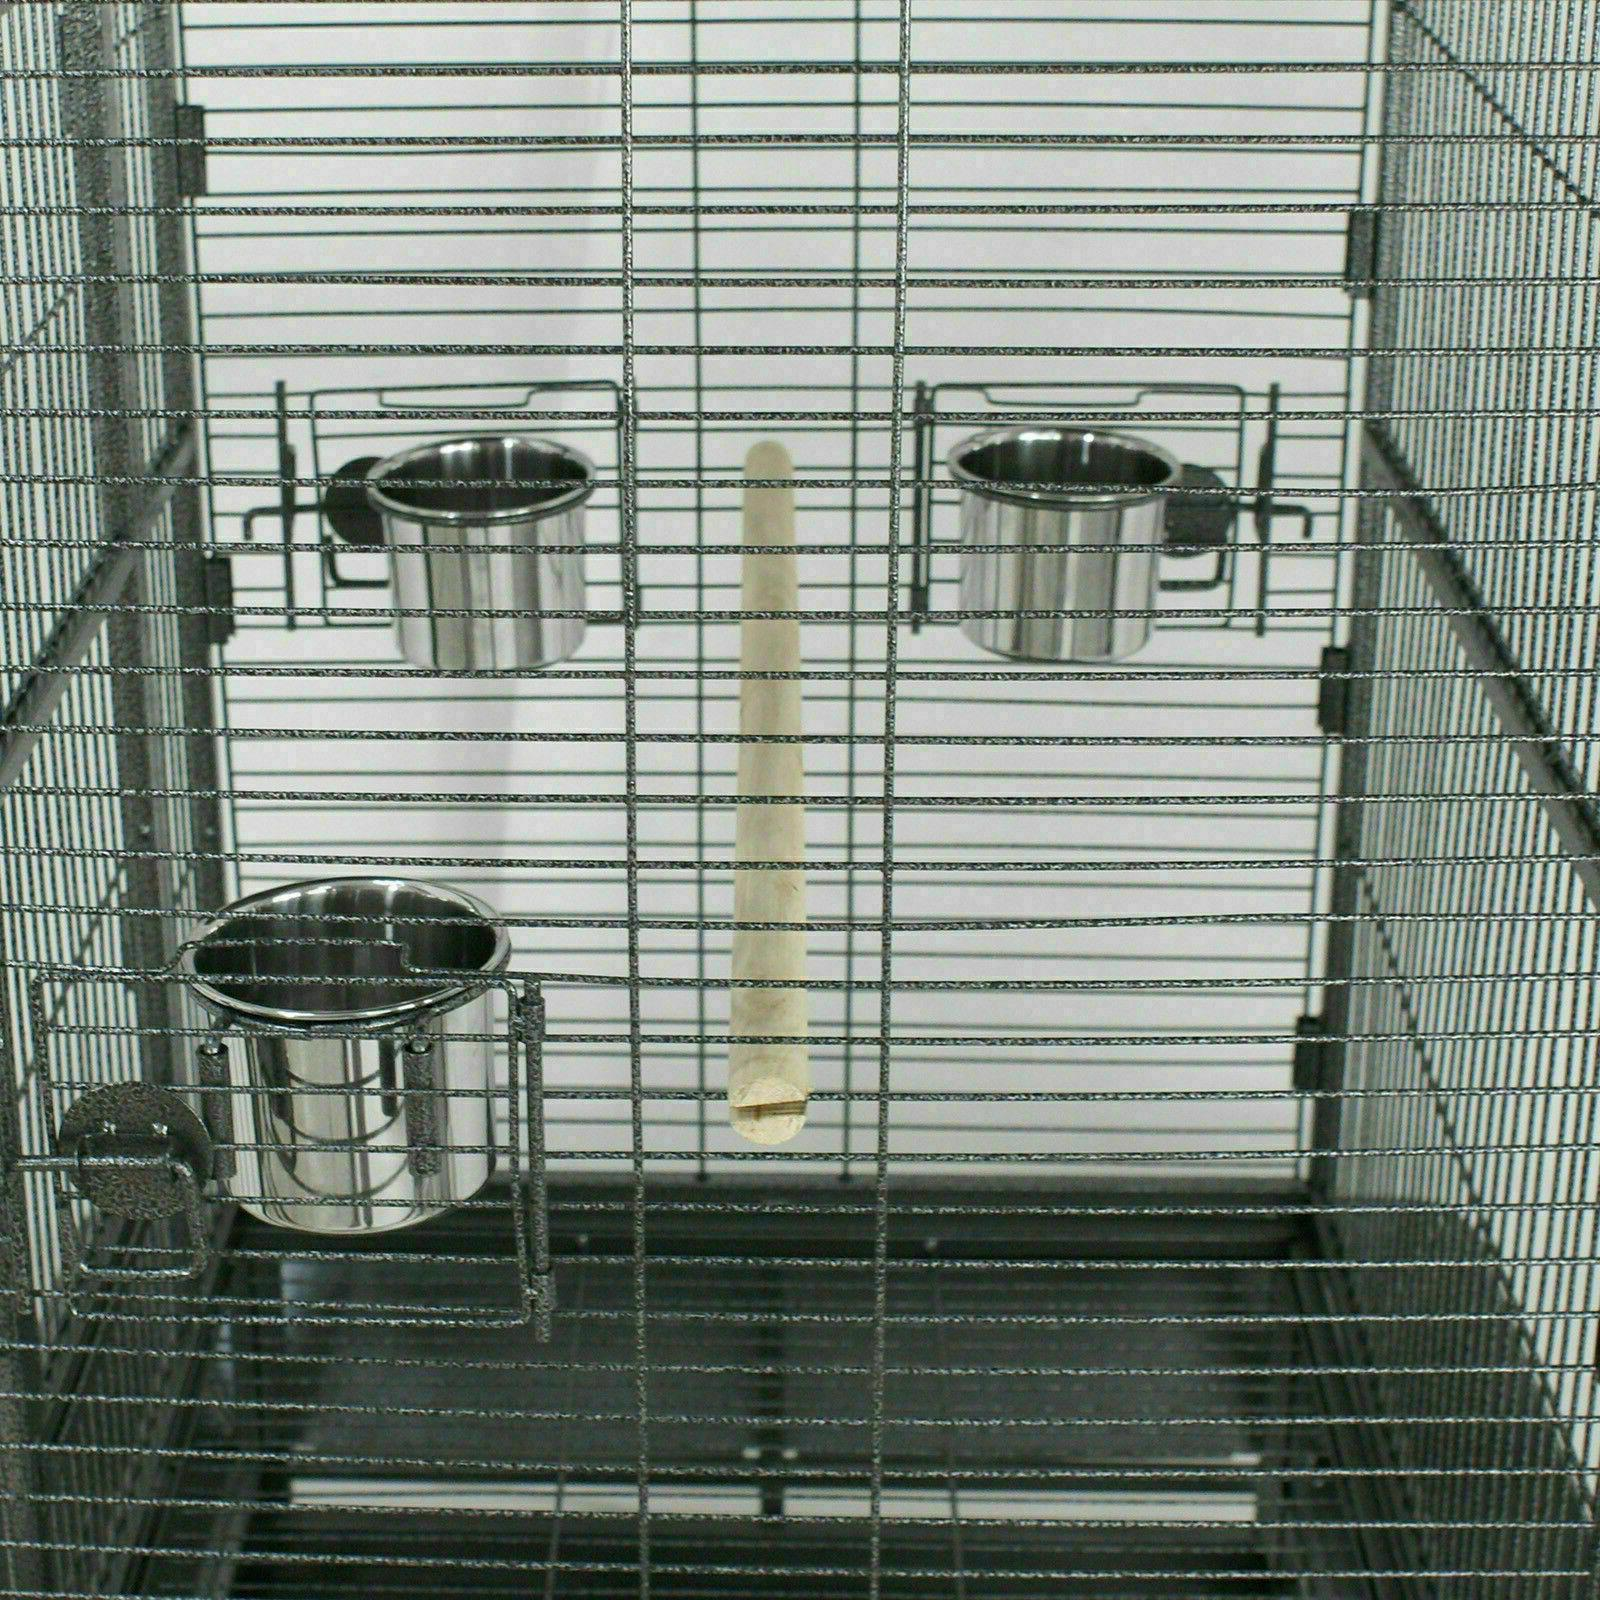 Penn Plax Bird Perch With 2 Stainless Steel Feeding Cups and